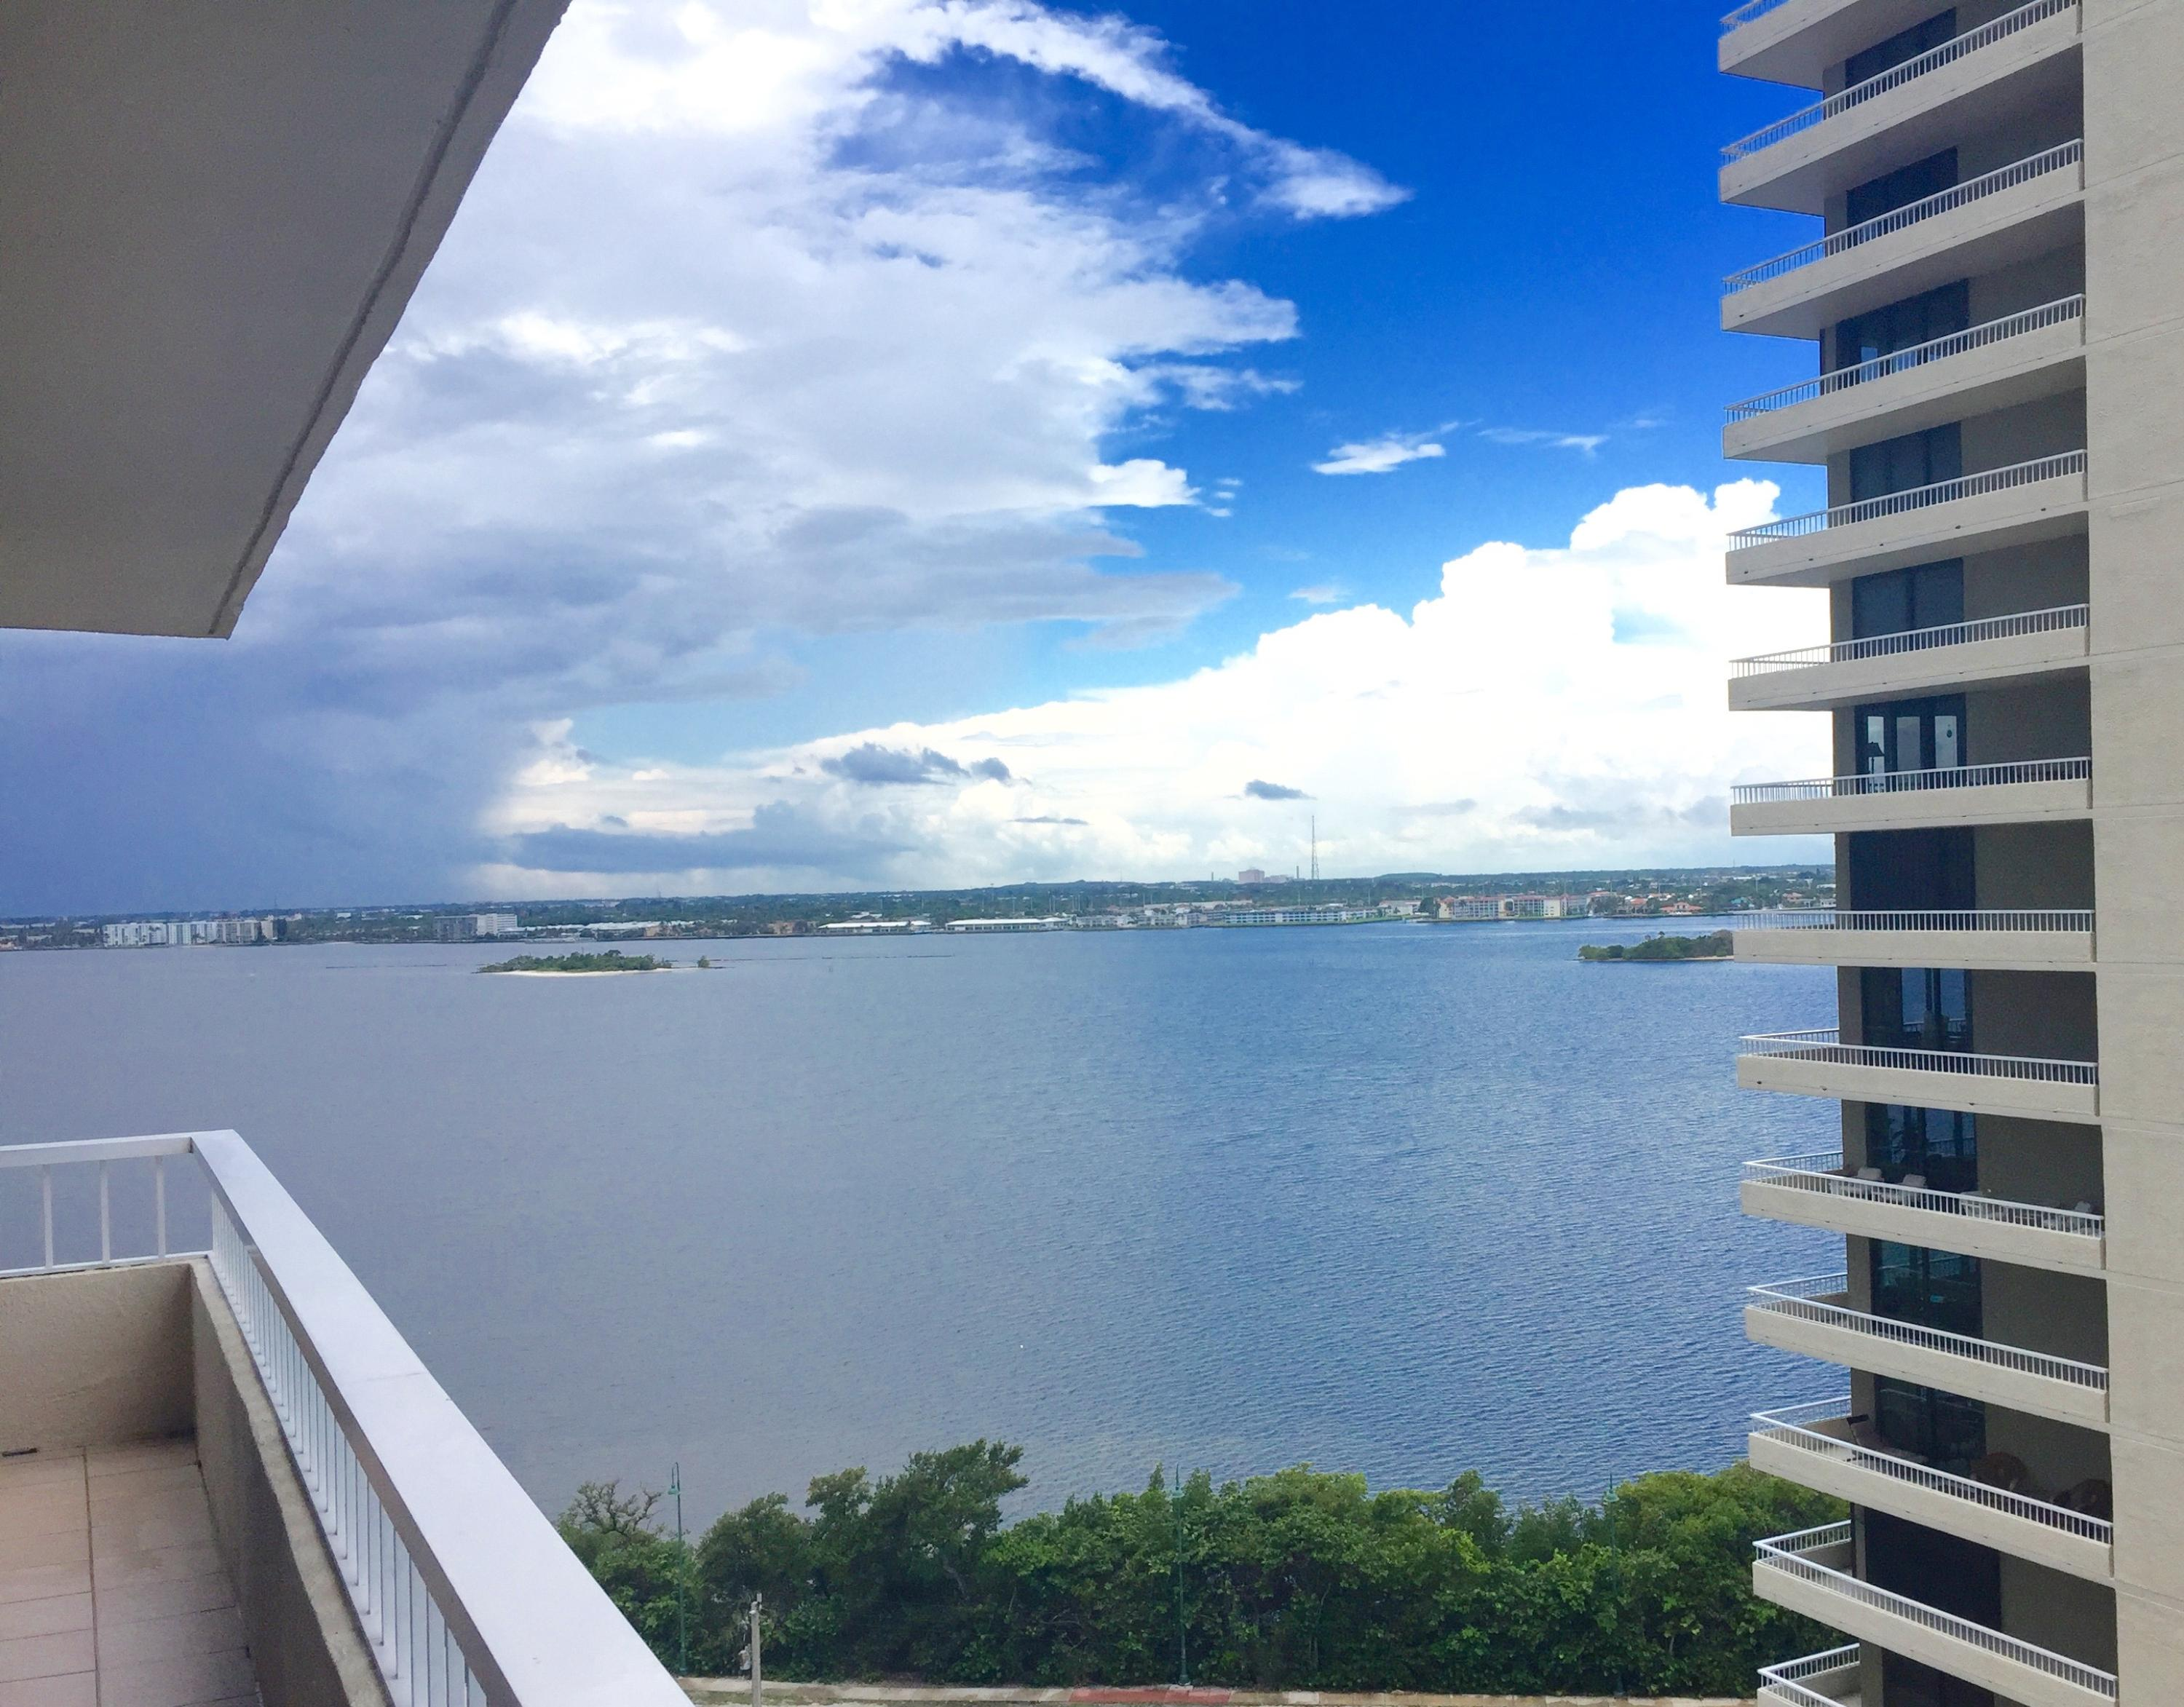 INTRACOASTAL WATERWAY VIEW